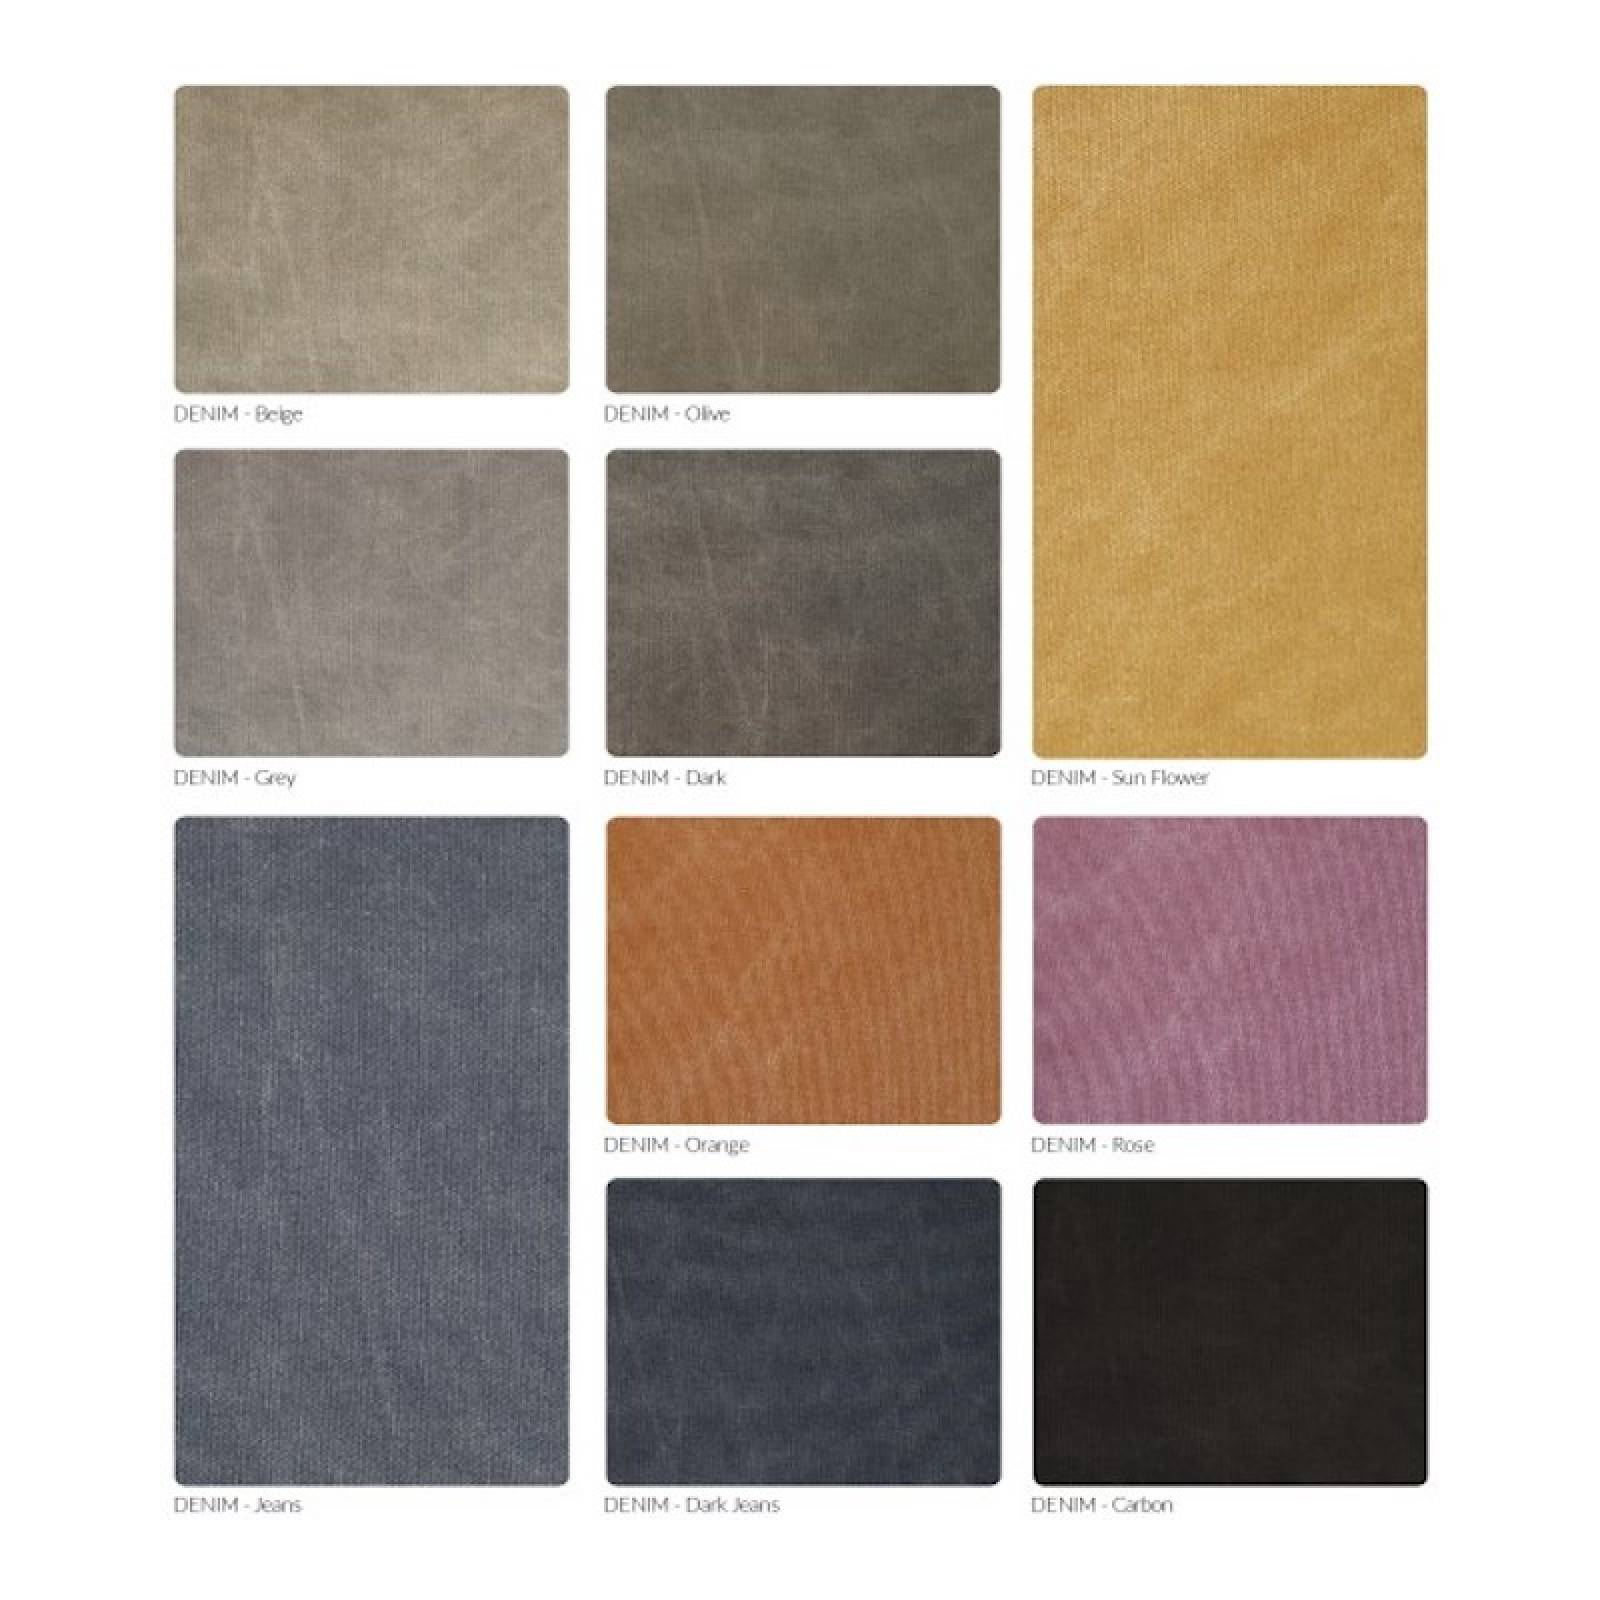 366 Armchair - Denim Fabrics thumbnails